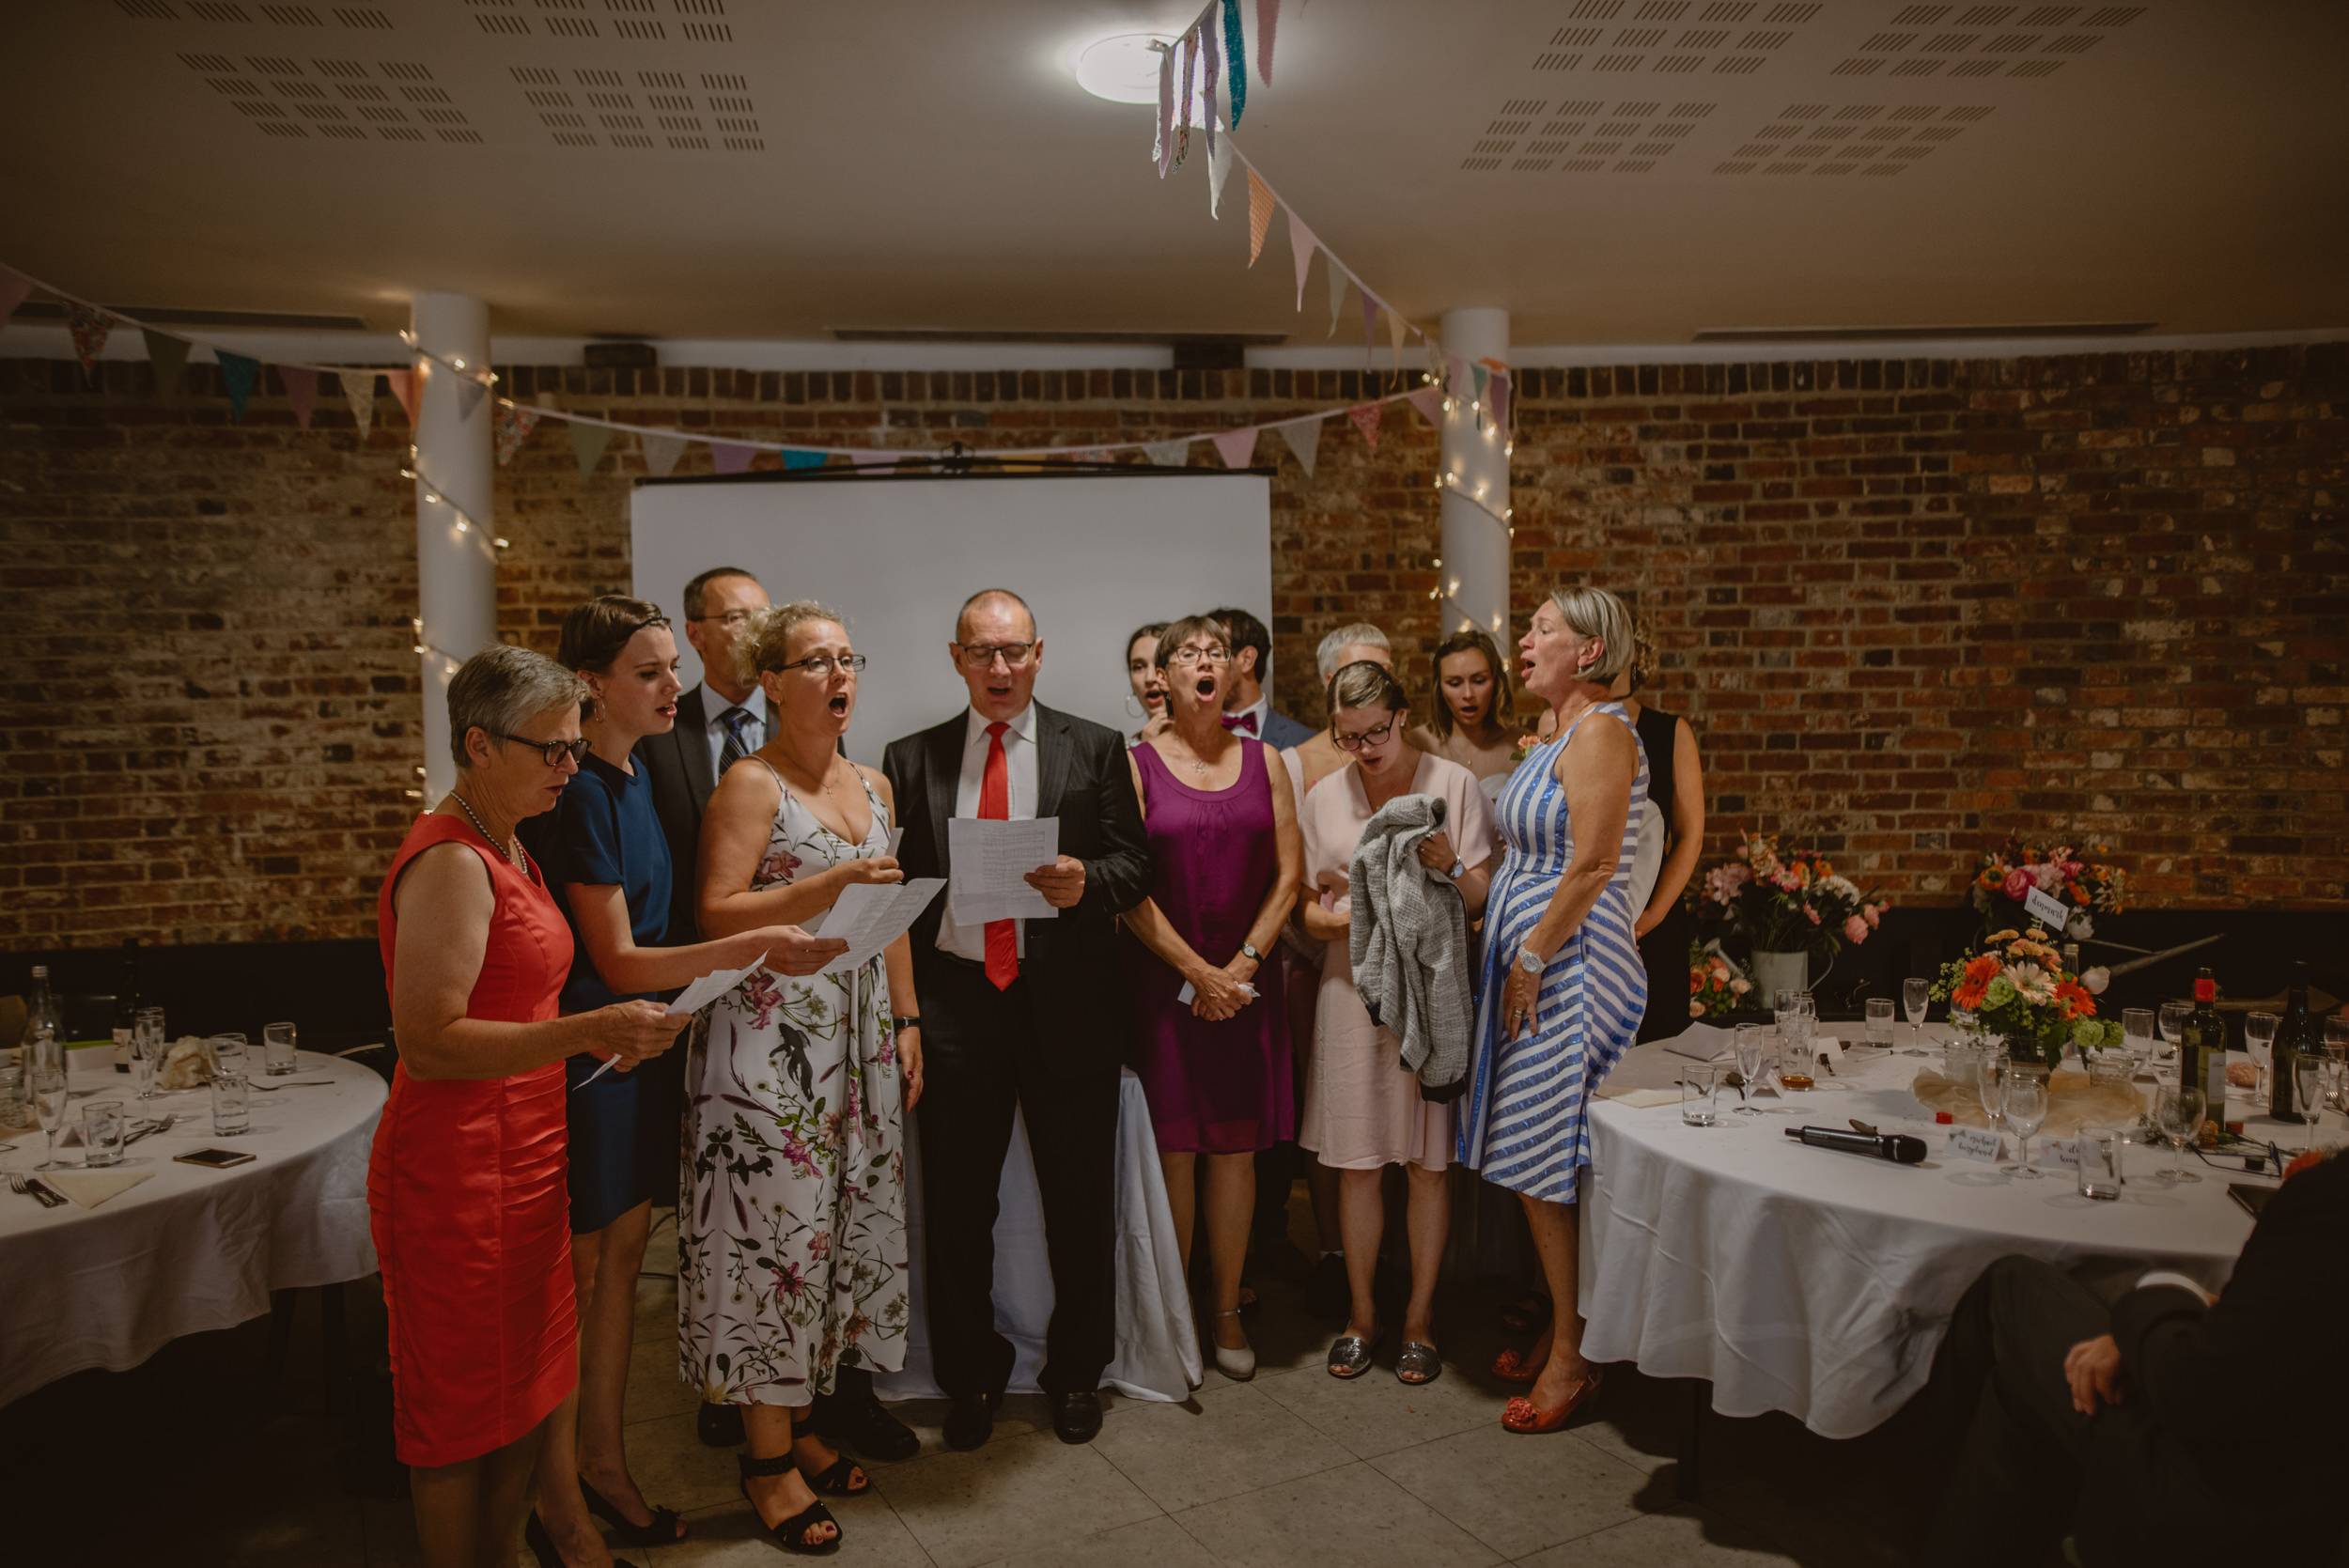 Sarah-and-Nils-Wedding-at-the-guildhall-poole-and-Lytchett-school-manu-mendoza-wedding-photography-364.jpg